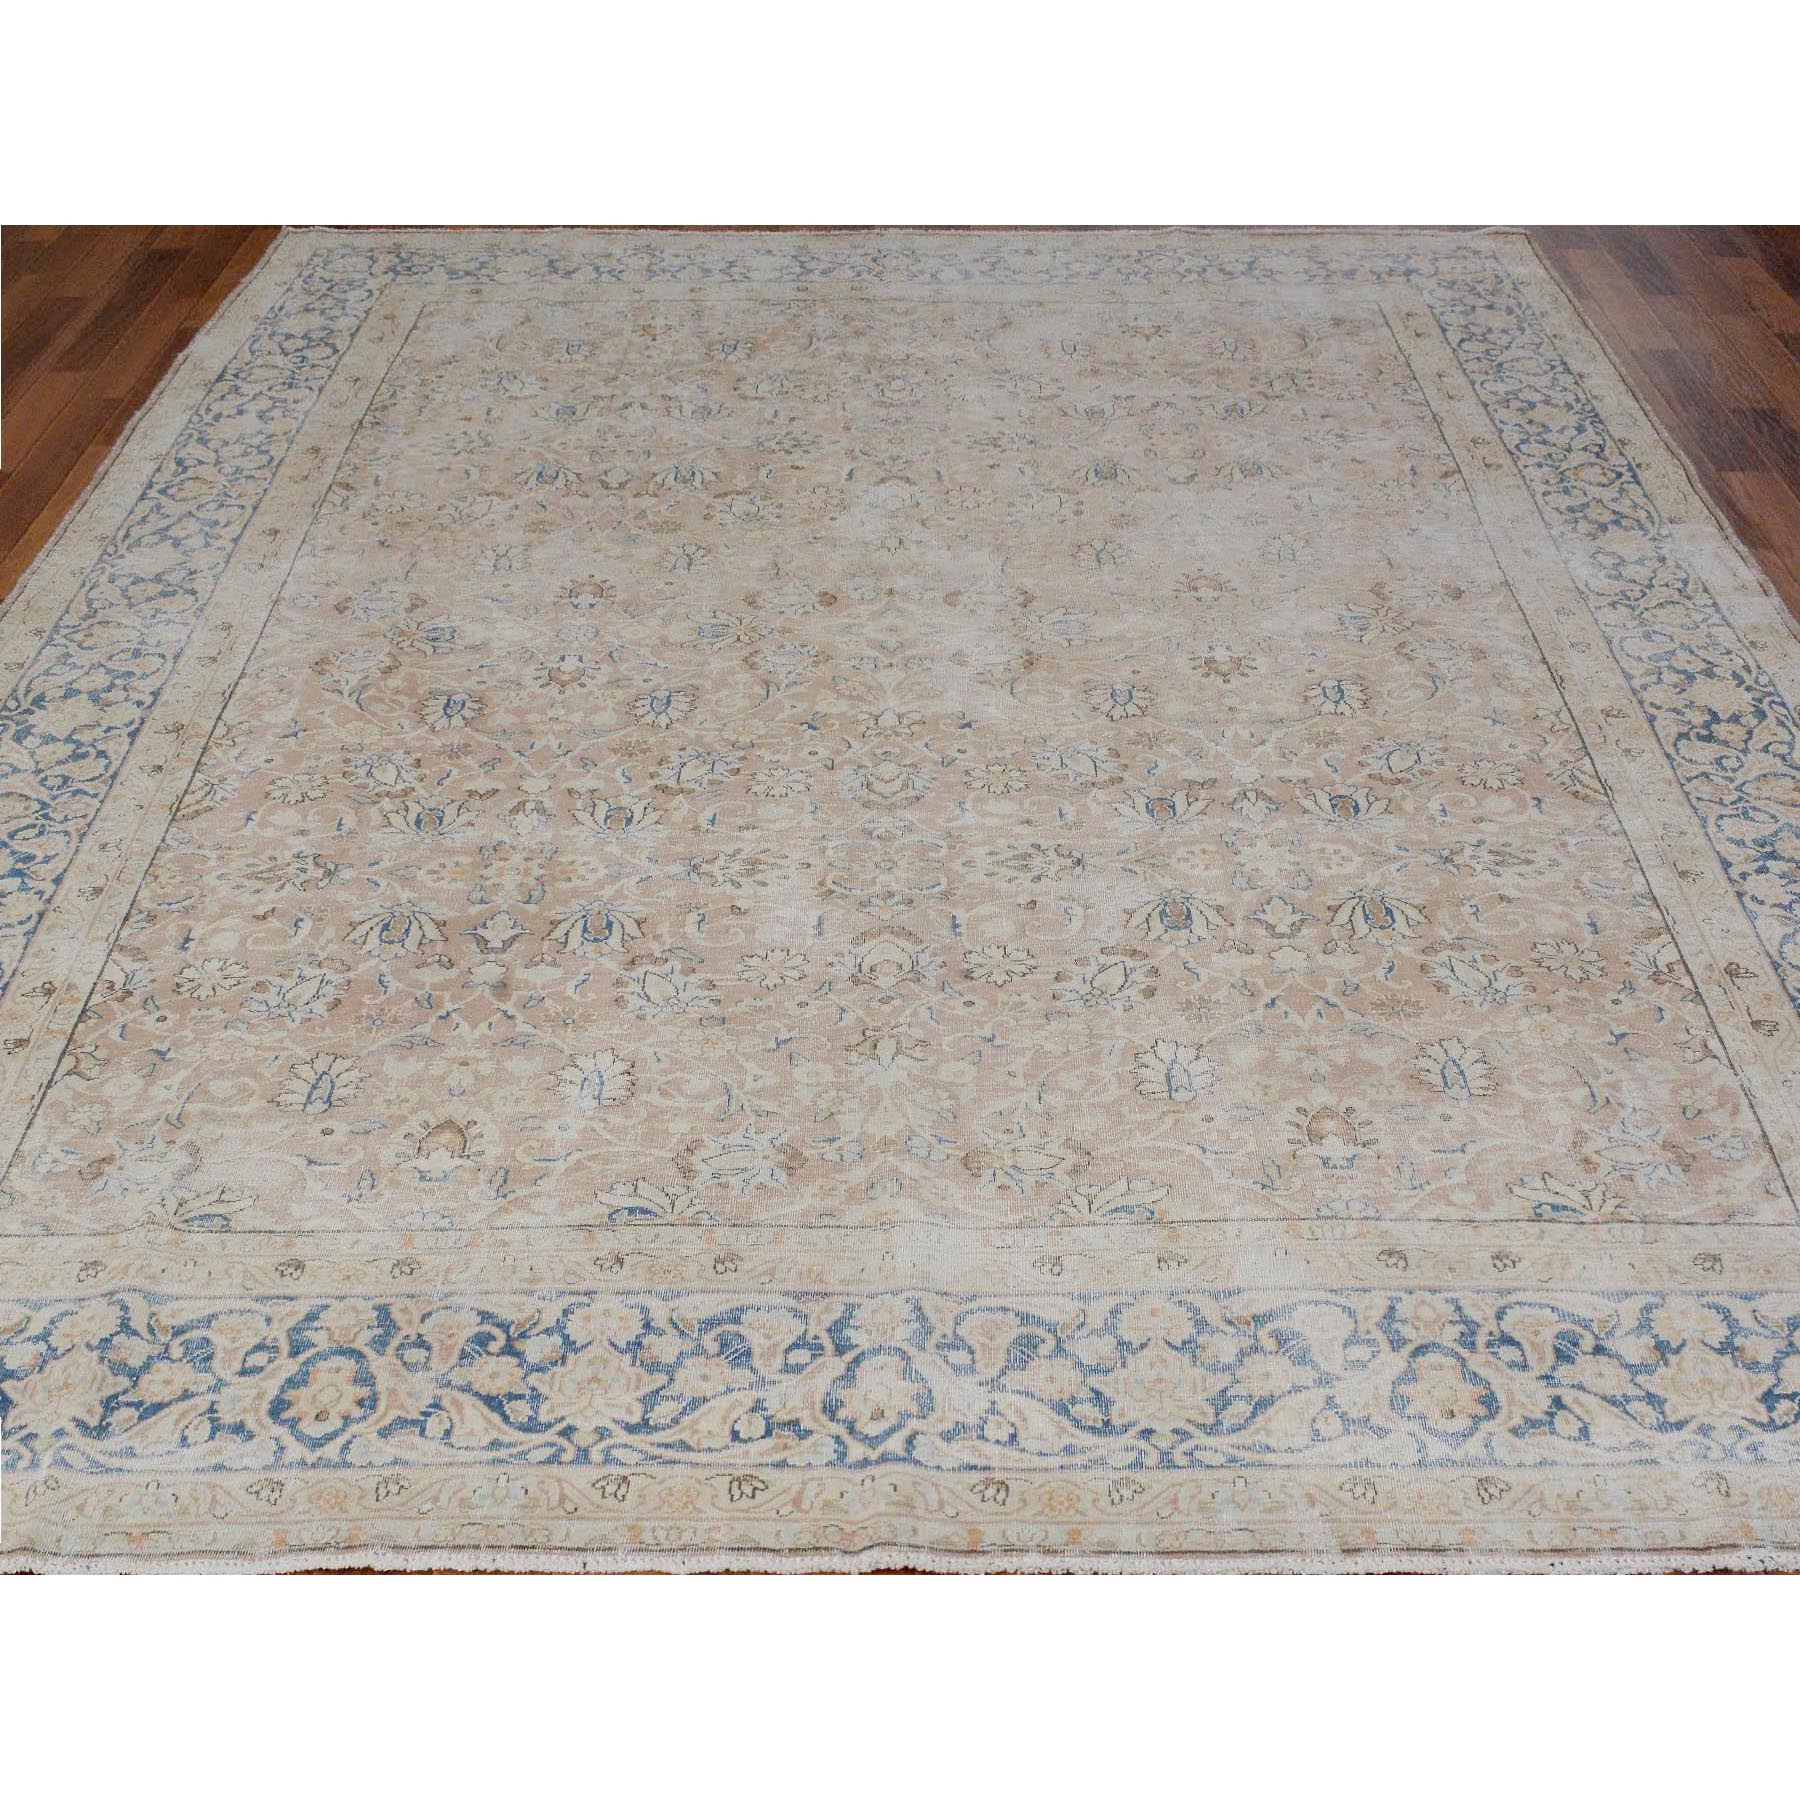 "8'x10'9"" Faded Coral Worn Down Vintage Persian Kerman Pure Wool Hand Woven Oriental Rug"